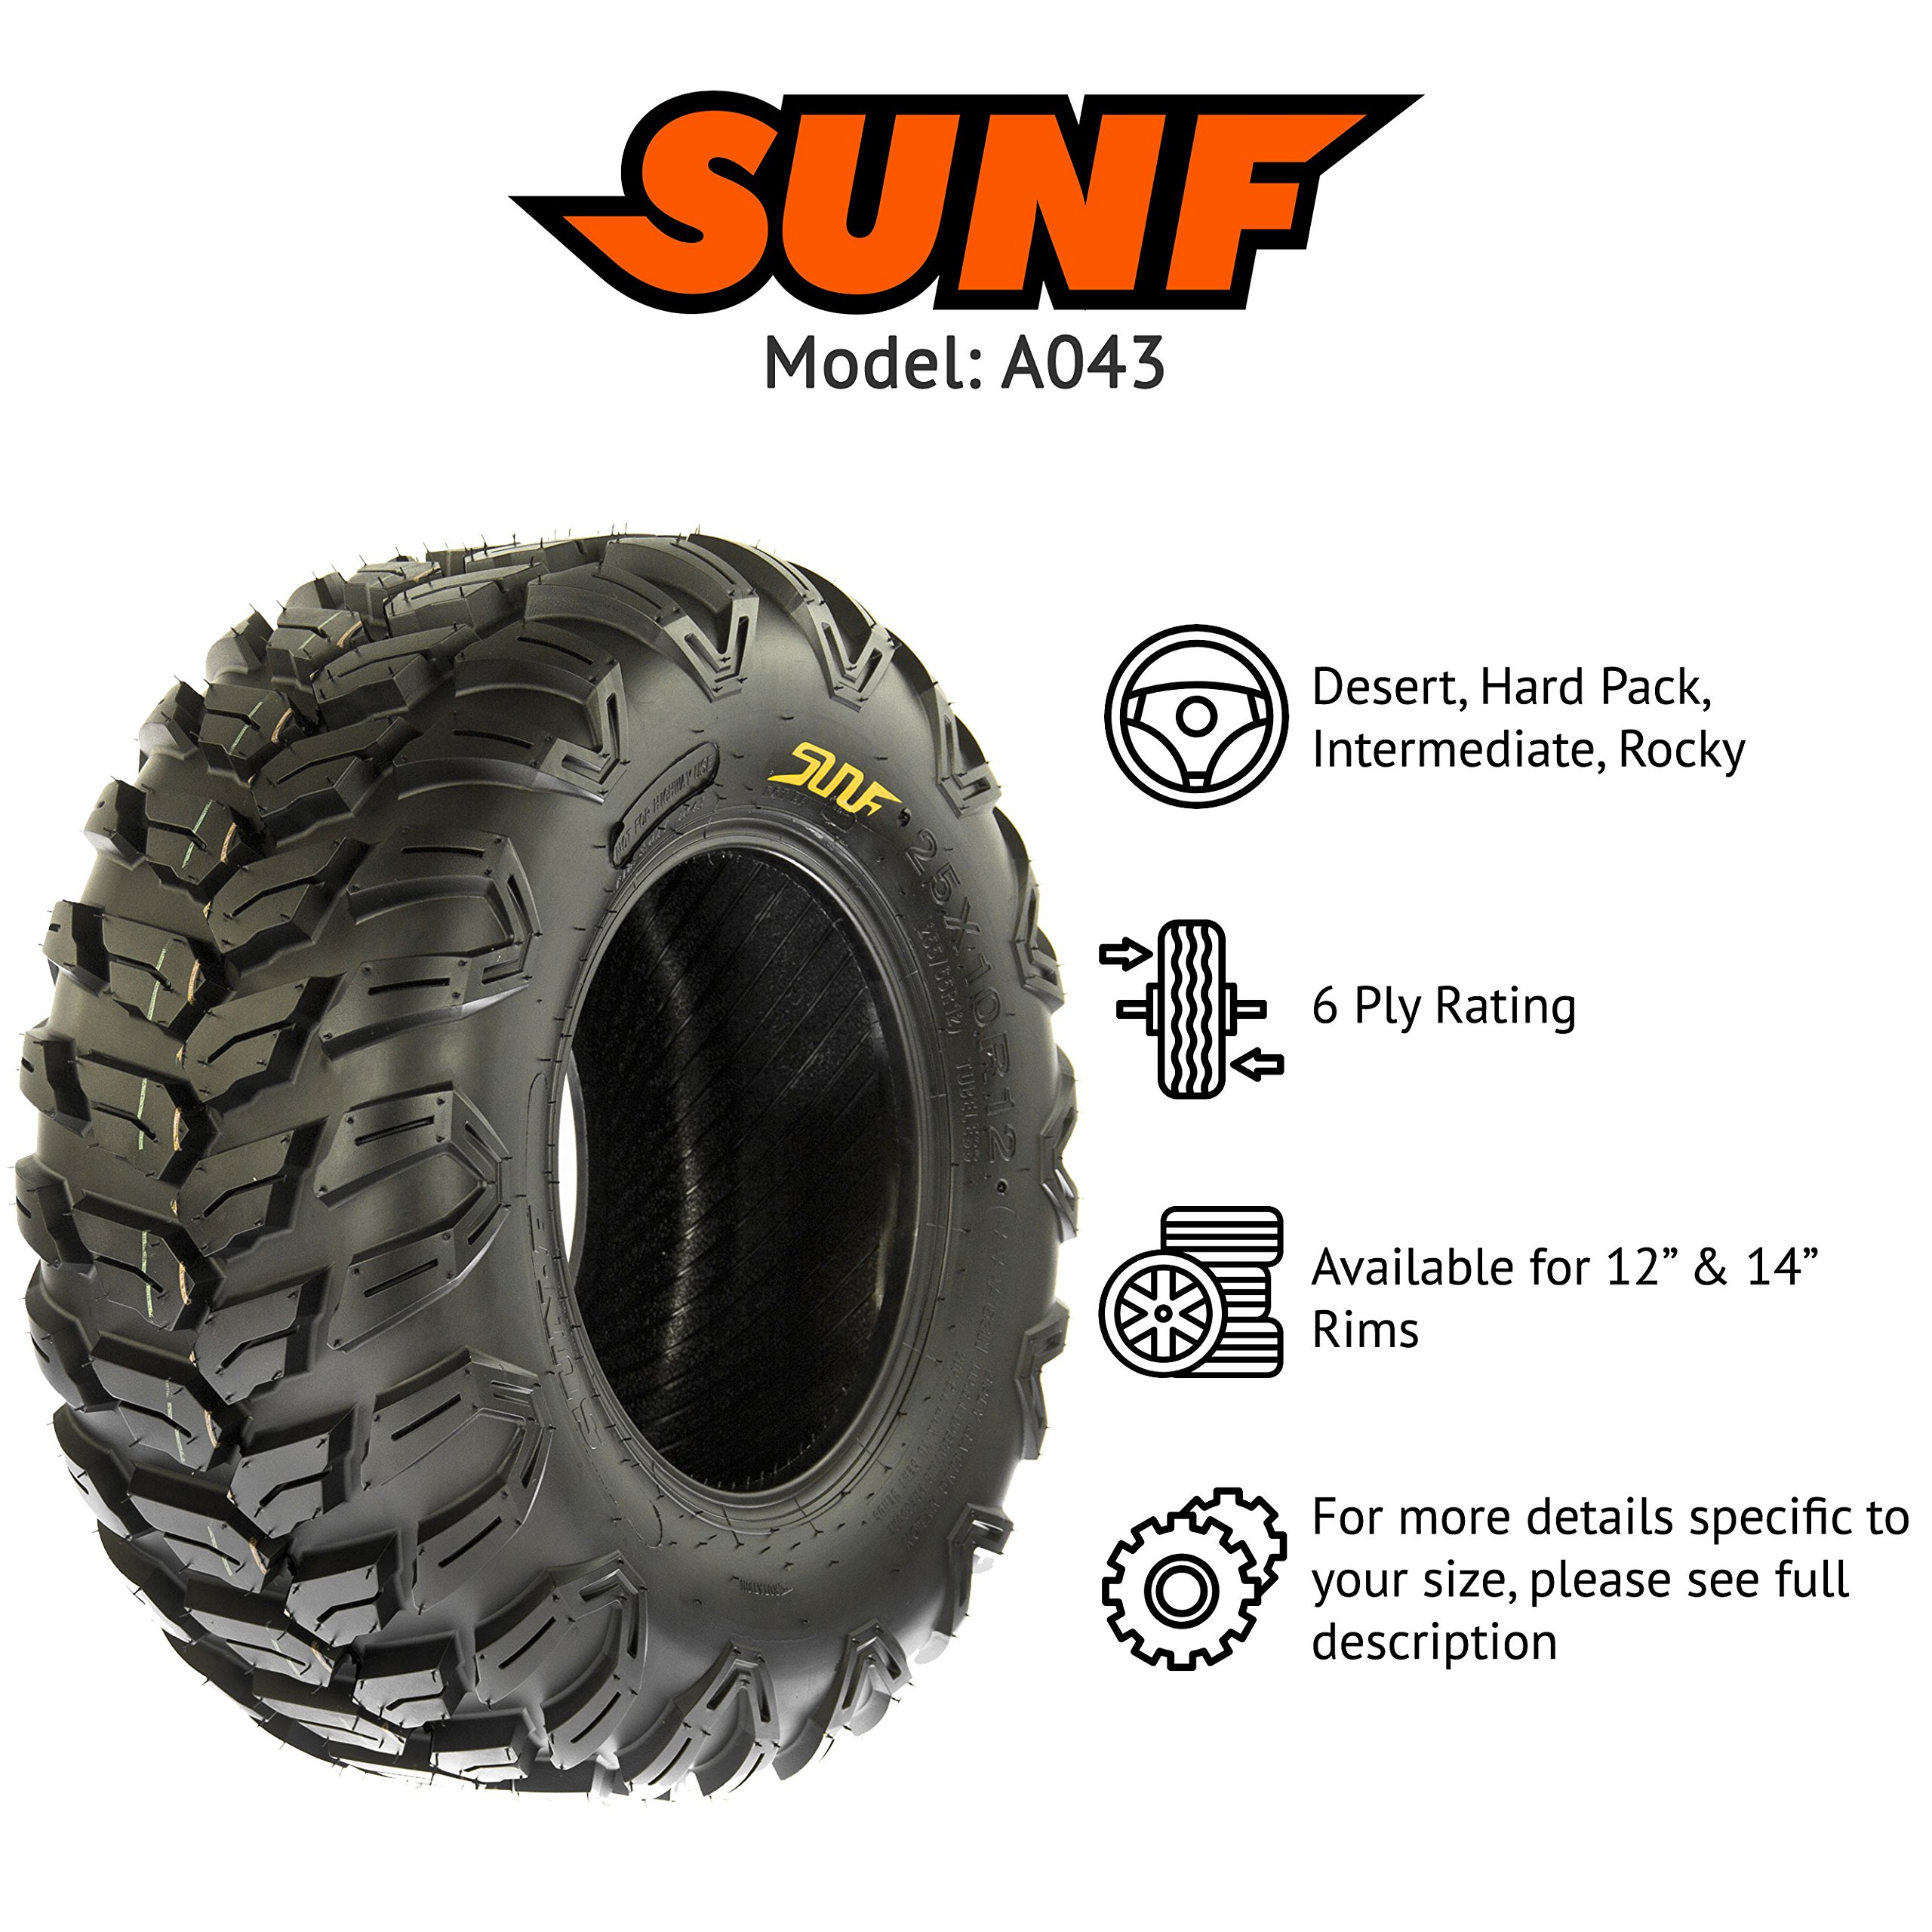 SunF A043 Sport-Performance XC ATV/UTV Off-Road RADIAL Tire - 26x11R14 (6-Ply Rated) by SunF (Image #2)